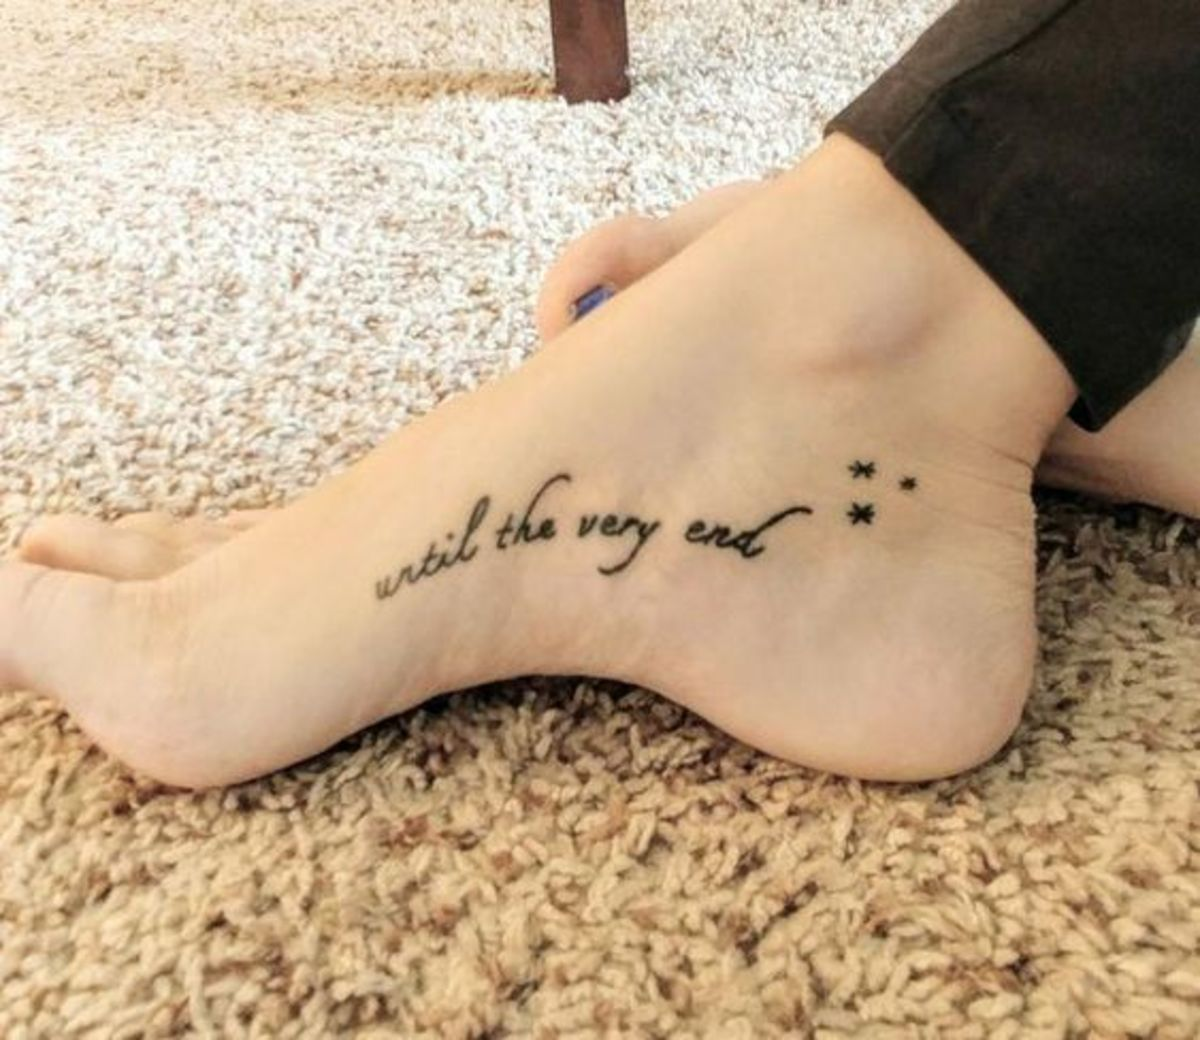 Until the very end tattoo